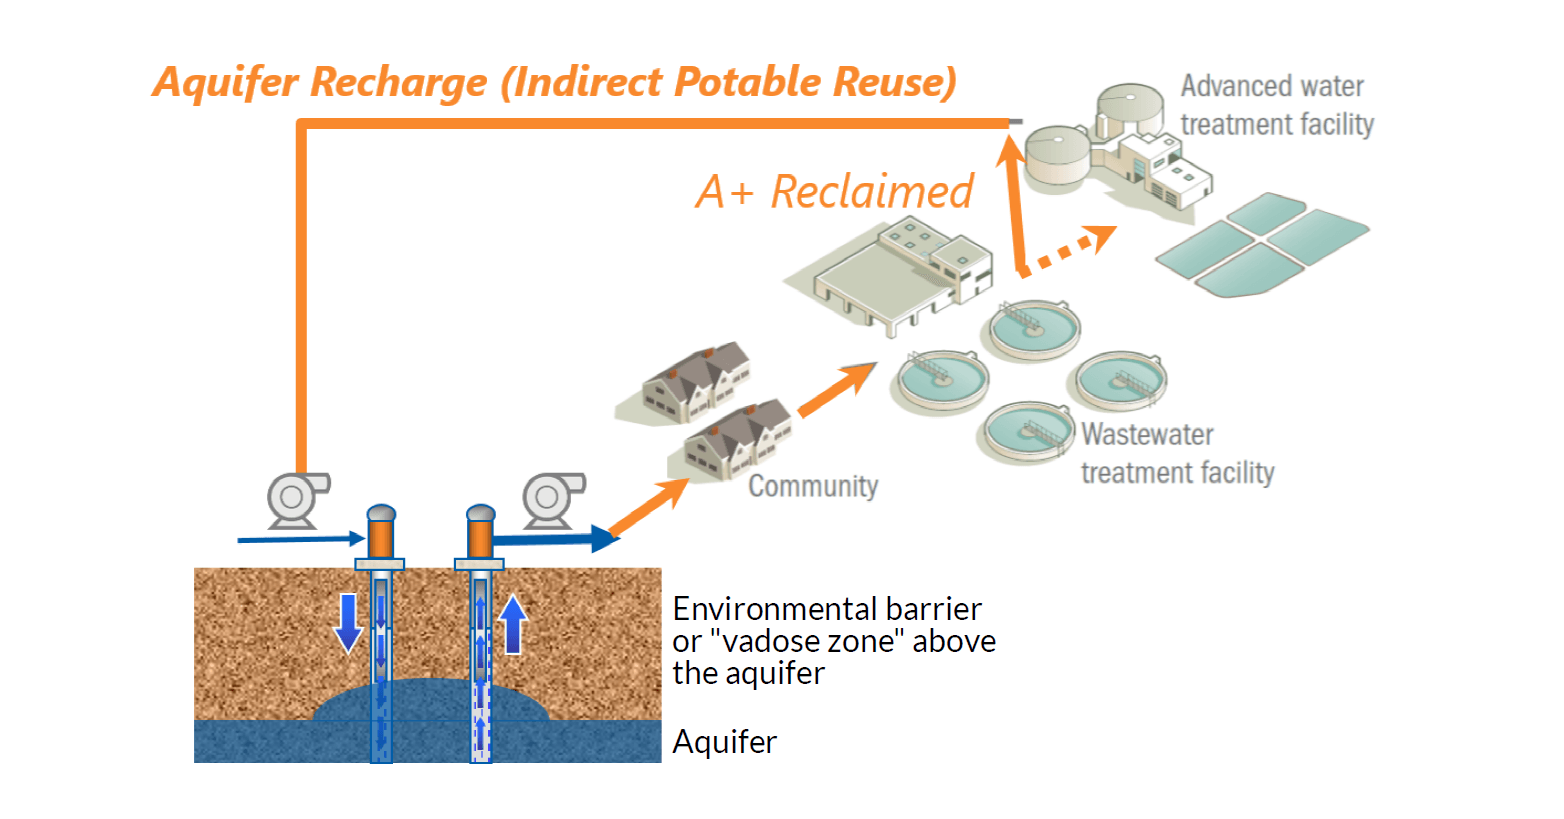 Aquifer Recharge Cycle